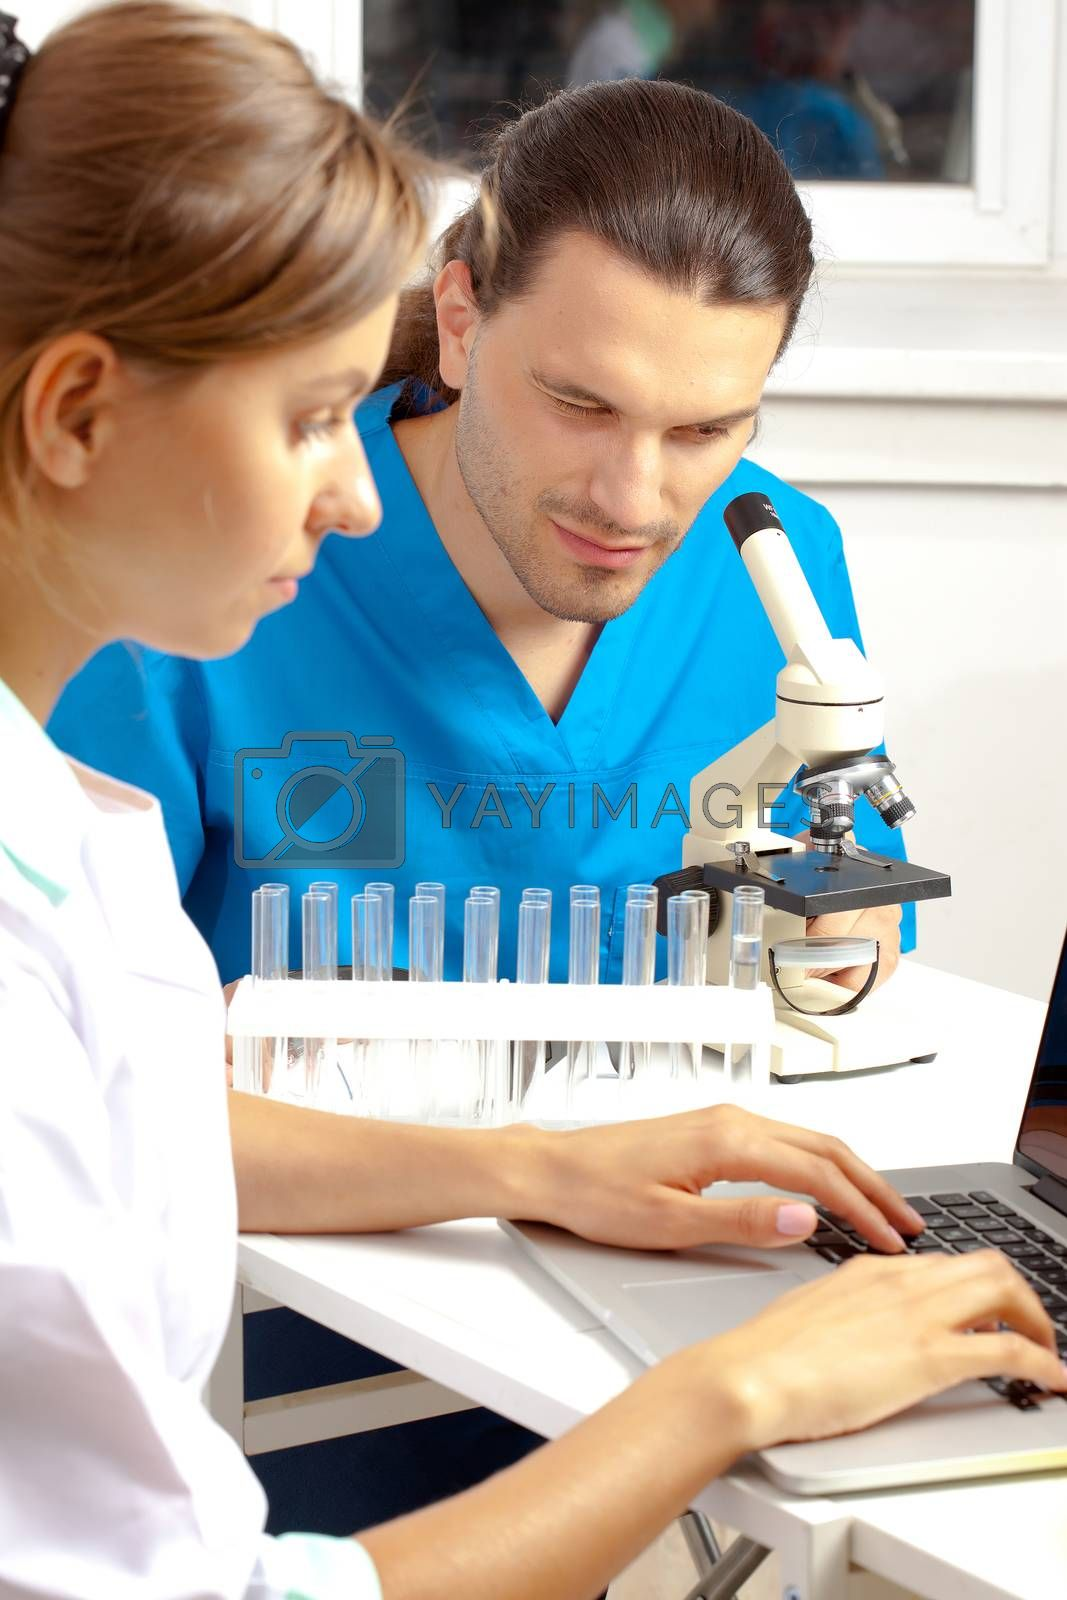 two scientists conduct scientific research in a lab